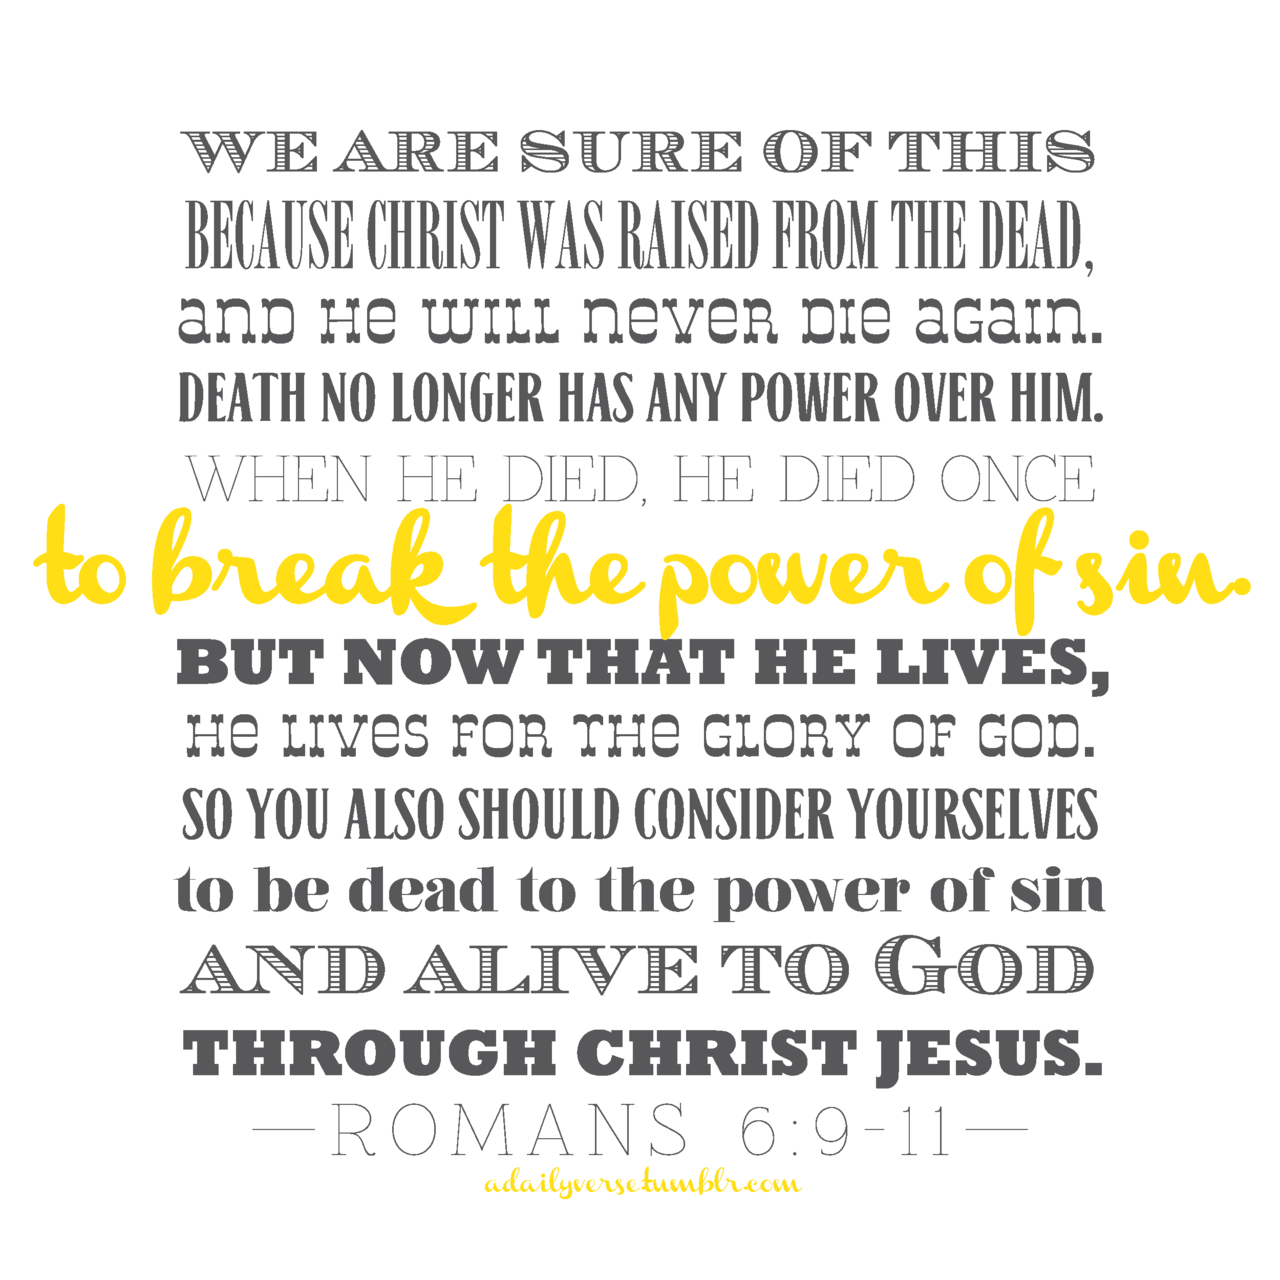 We are sure of this because Christ was raised from the dead, and he will never die again. Death no longer has any power over him. When he died, he died once to break the power of sin. But now that he lives, he lives for the glory of God. So you also should consider yourselves to be dead to the power of sin and alive to God through Christ Jesus.—Romans 6:9-11